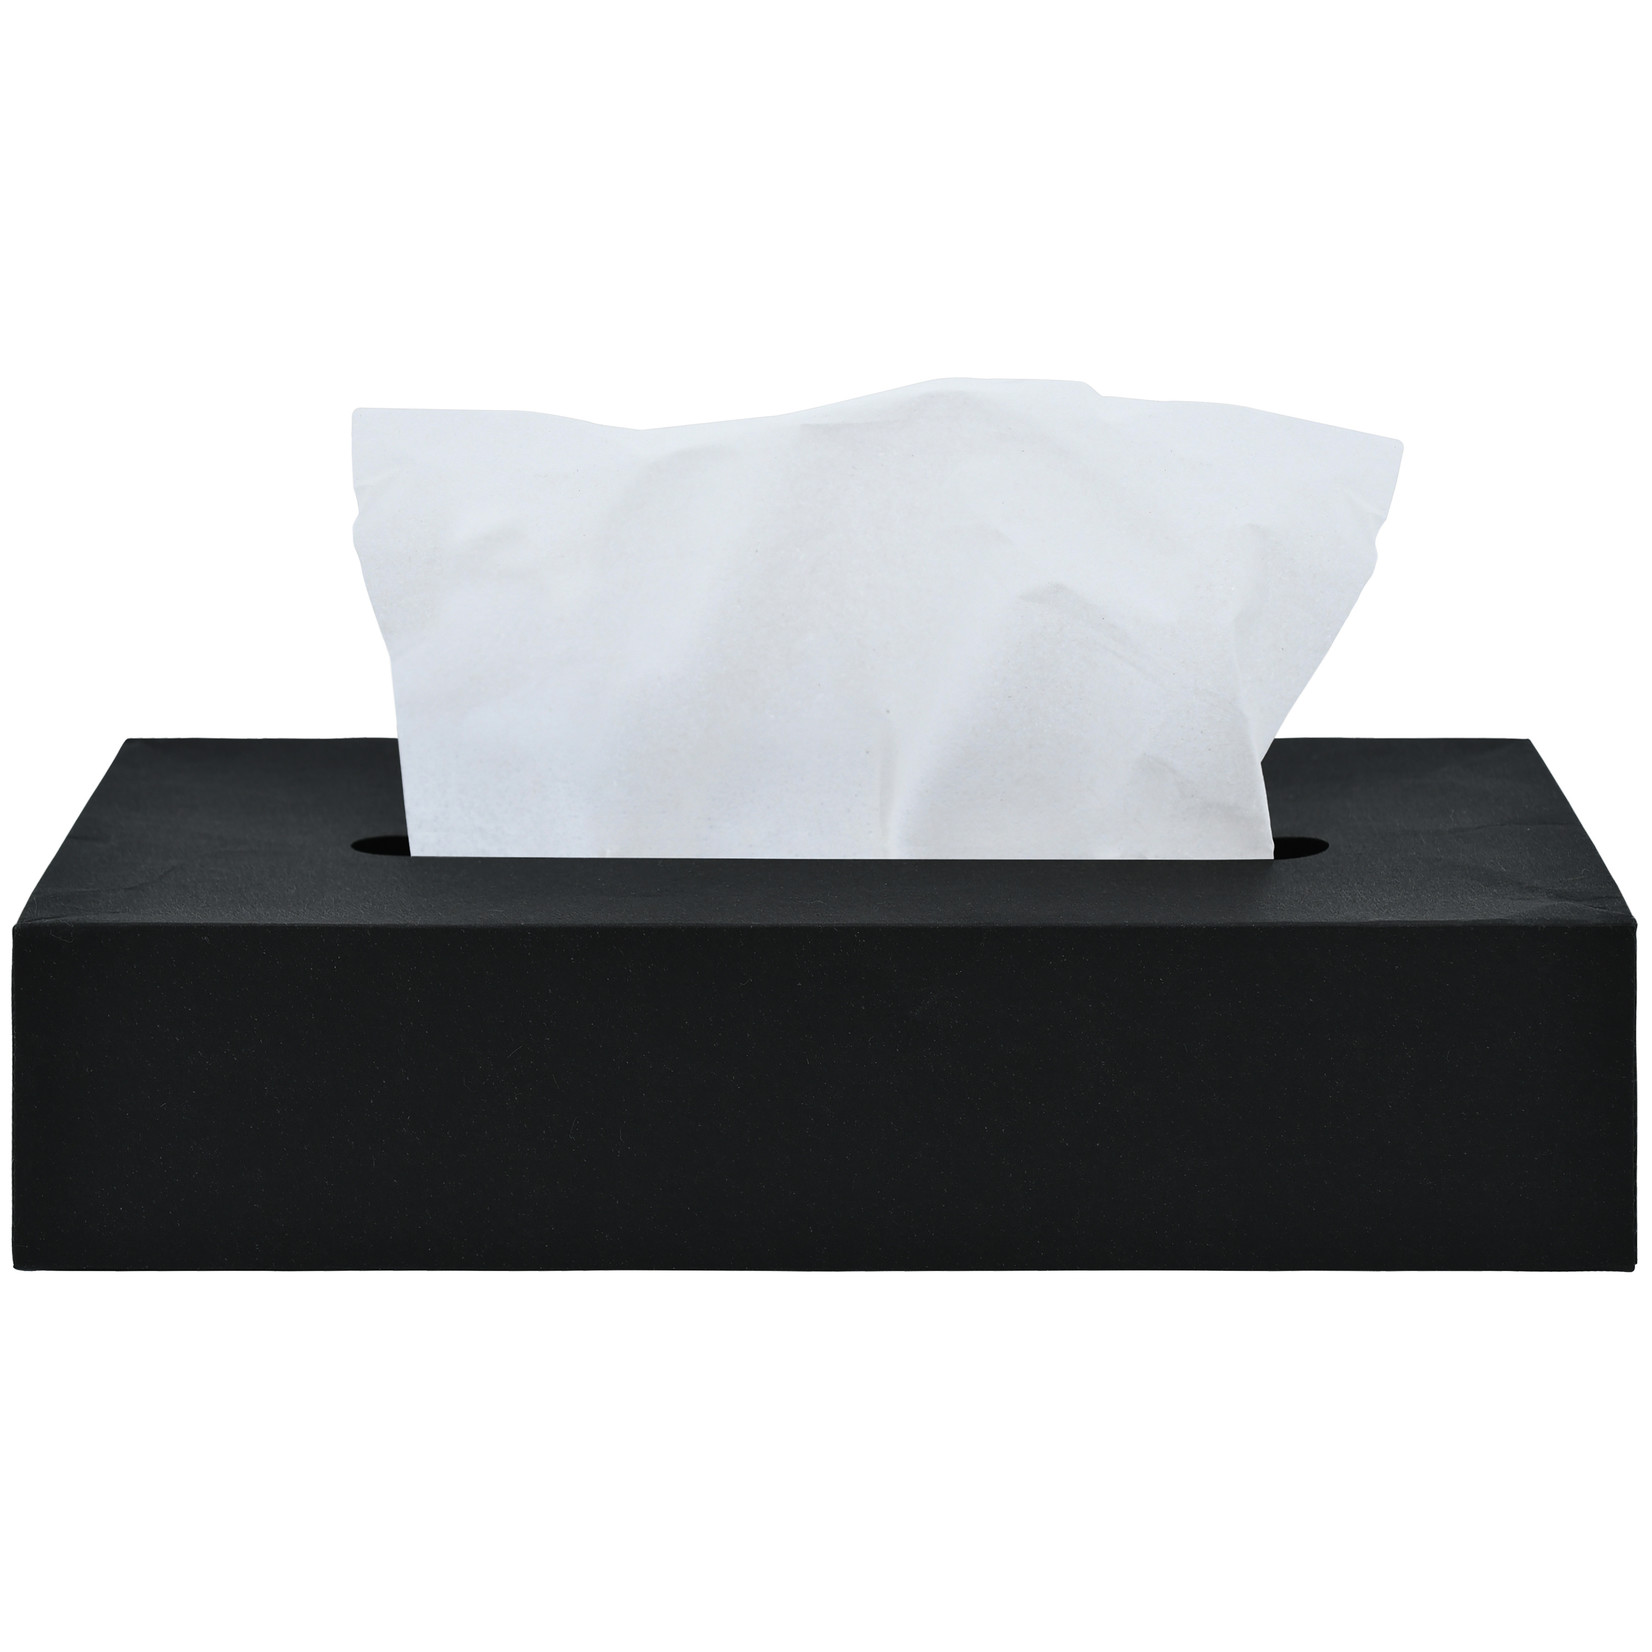 Based on Roots SIWA tissue box cover s